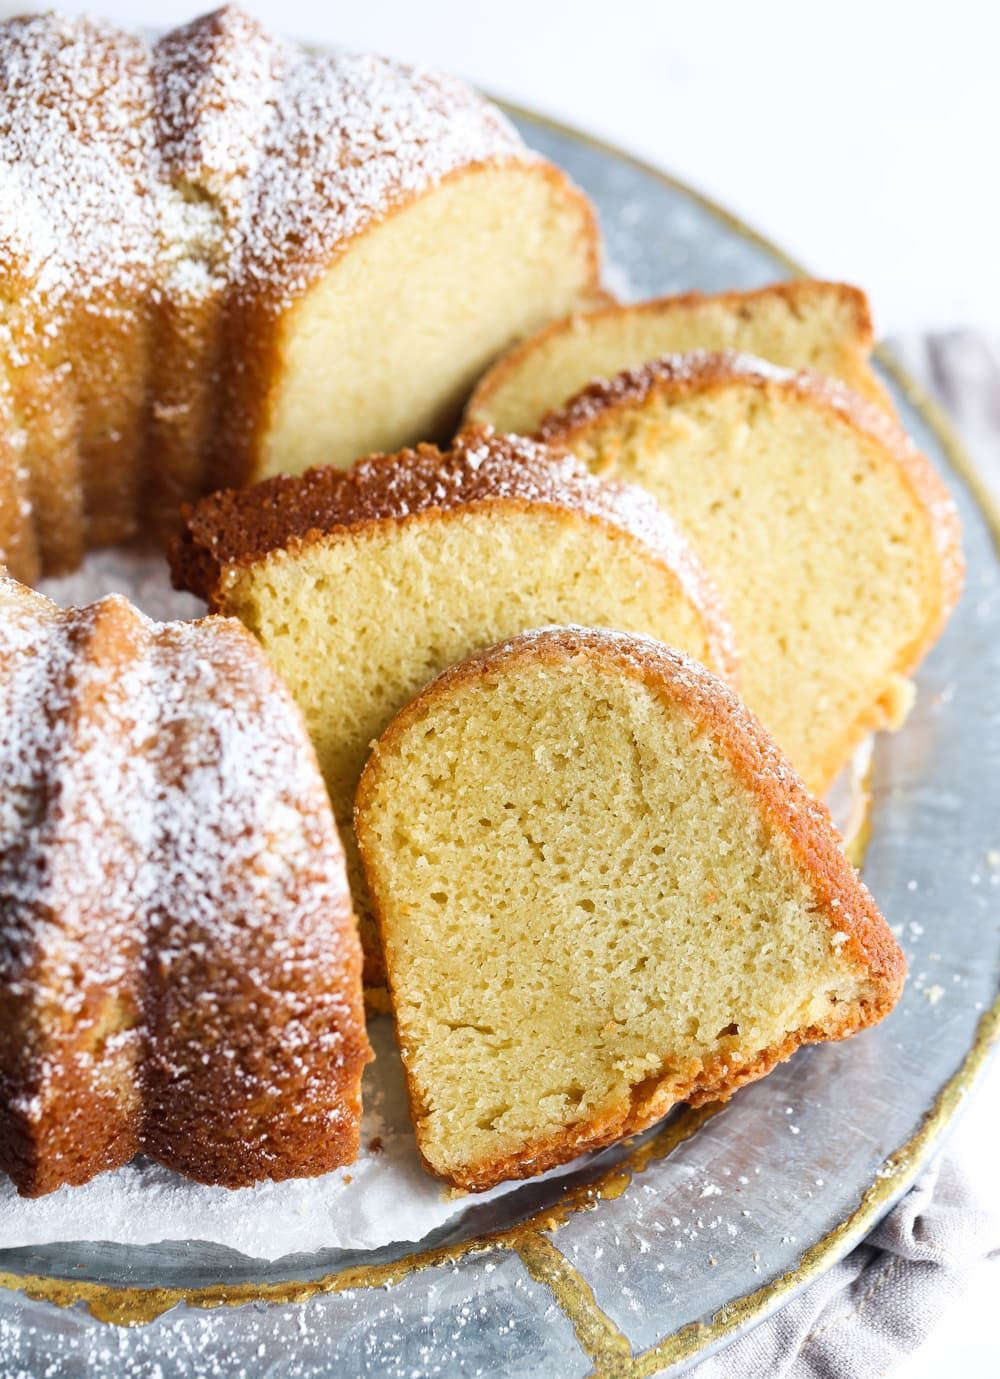 This Sour Cream Pound Cake Is Absolutely The Best Dense Moist And Flavorful This In 2020 Sour Cream Pound Cake Pound Cake Recipes Best Sour Cream Pound Cake Recipe